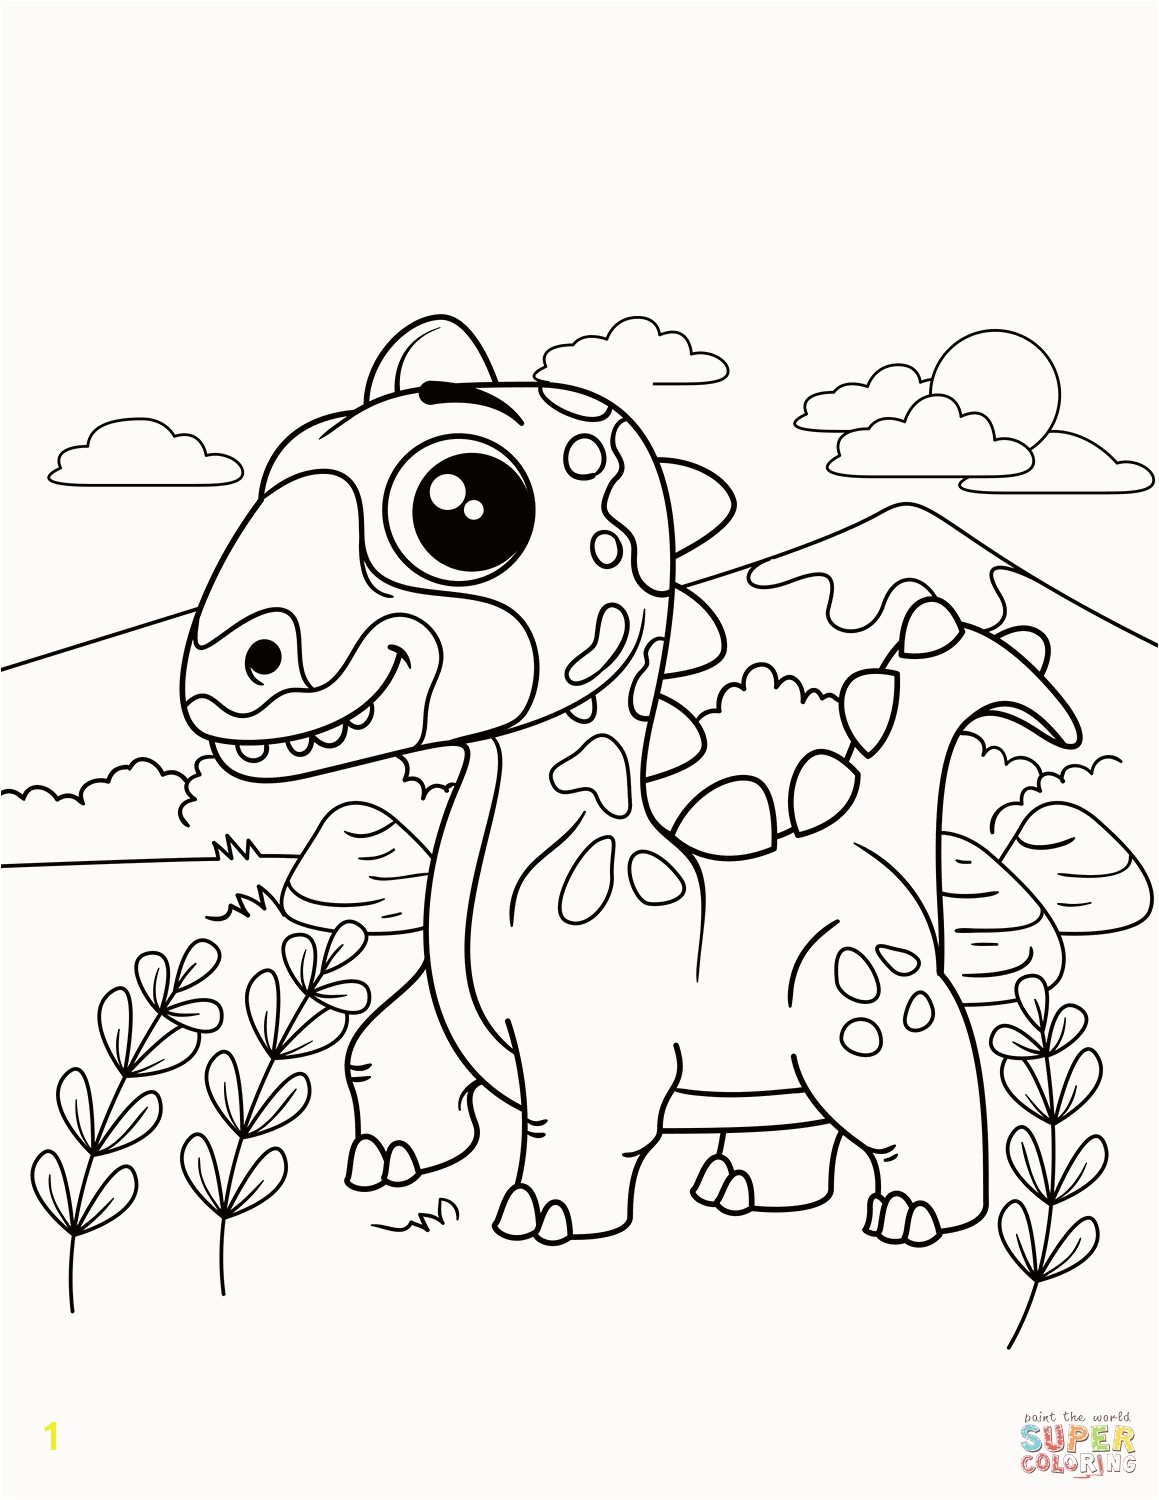 Free Dinosaur Coloring Pages Pdf Dinosaur Printable Coloring Pages Beautiful Free Printable Coloring